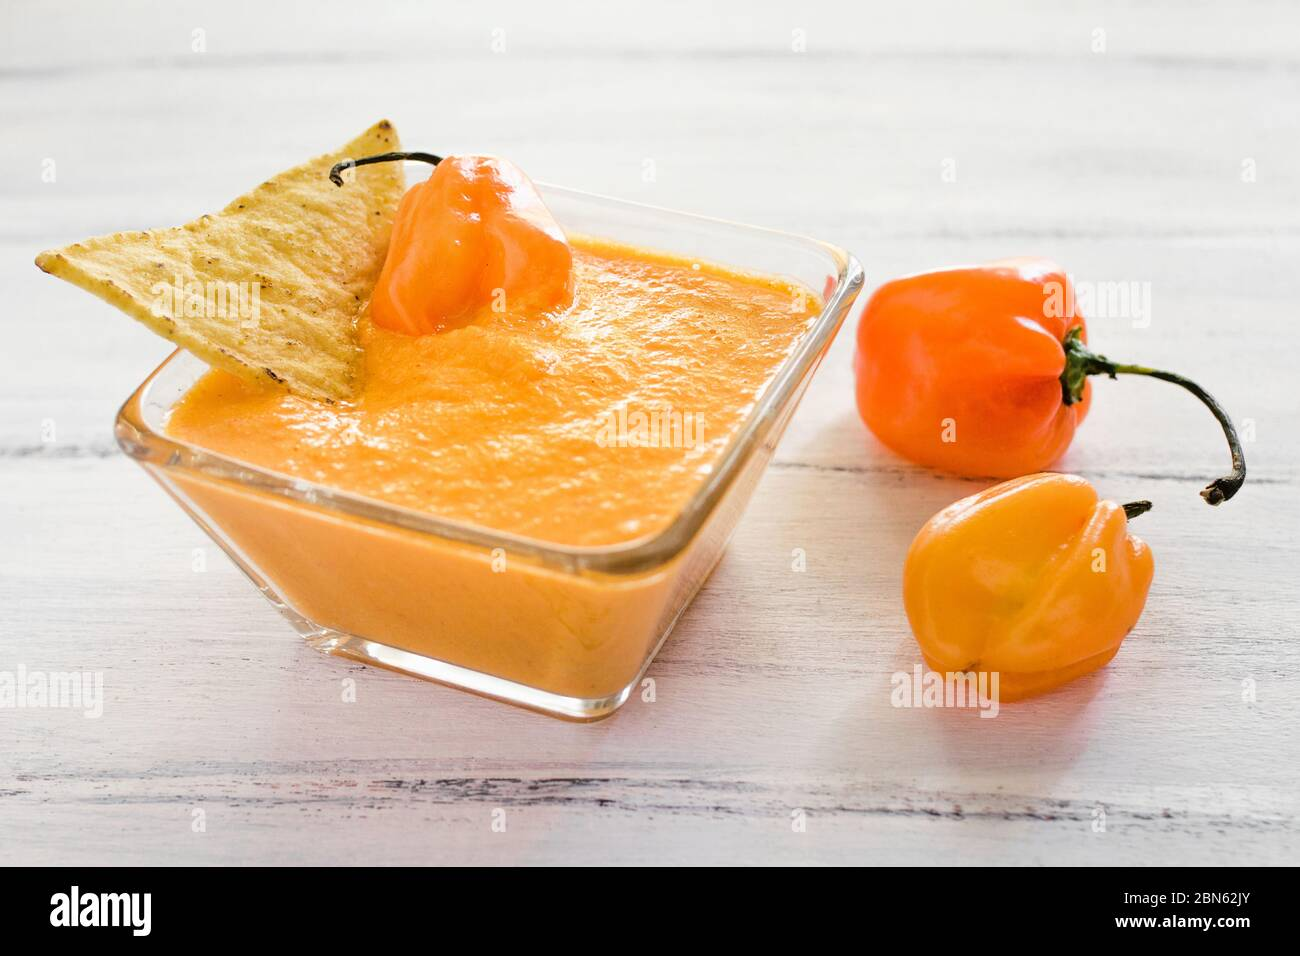 Habanero Sauce Salsa De Chiles Habaneros Spicy Ripe Habanero Hot Chili Peppers Mexican Food In Mexico Stock Photo Alamy